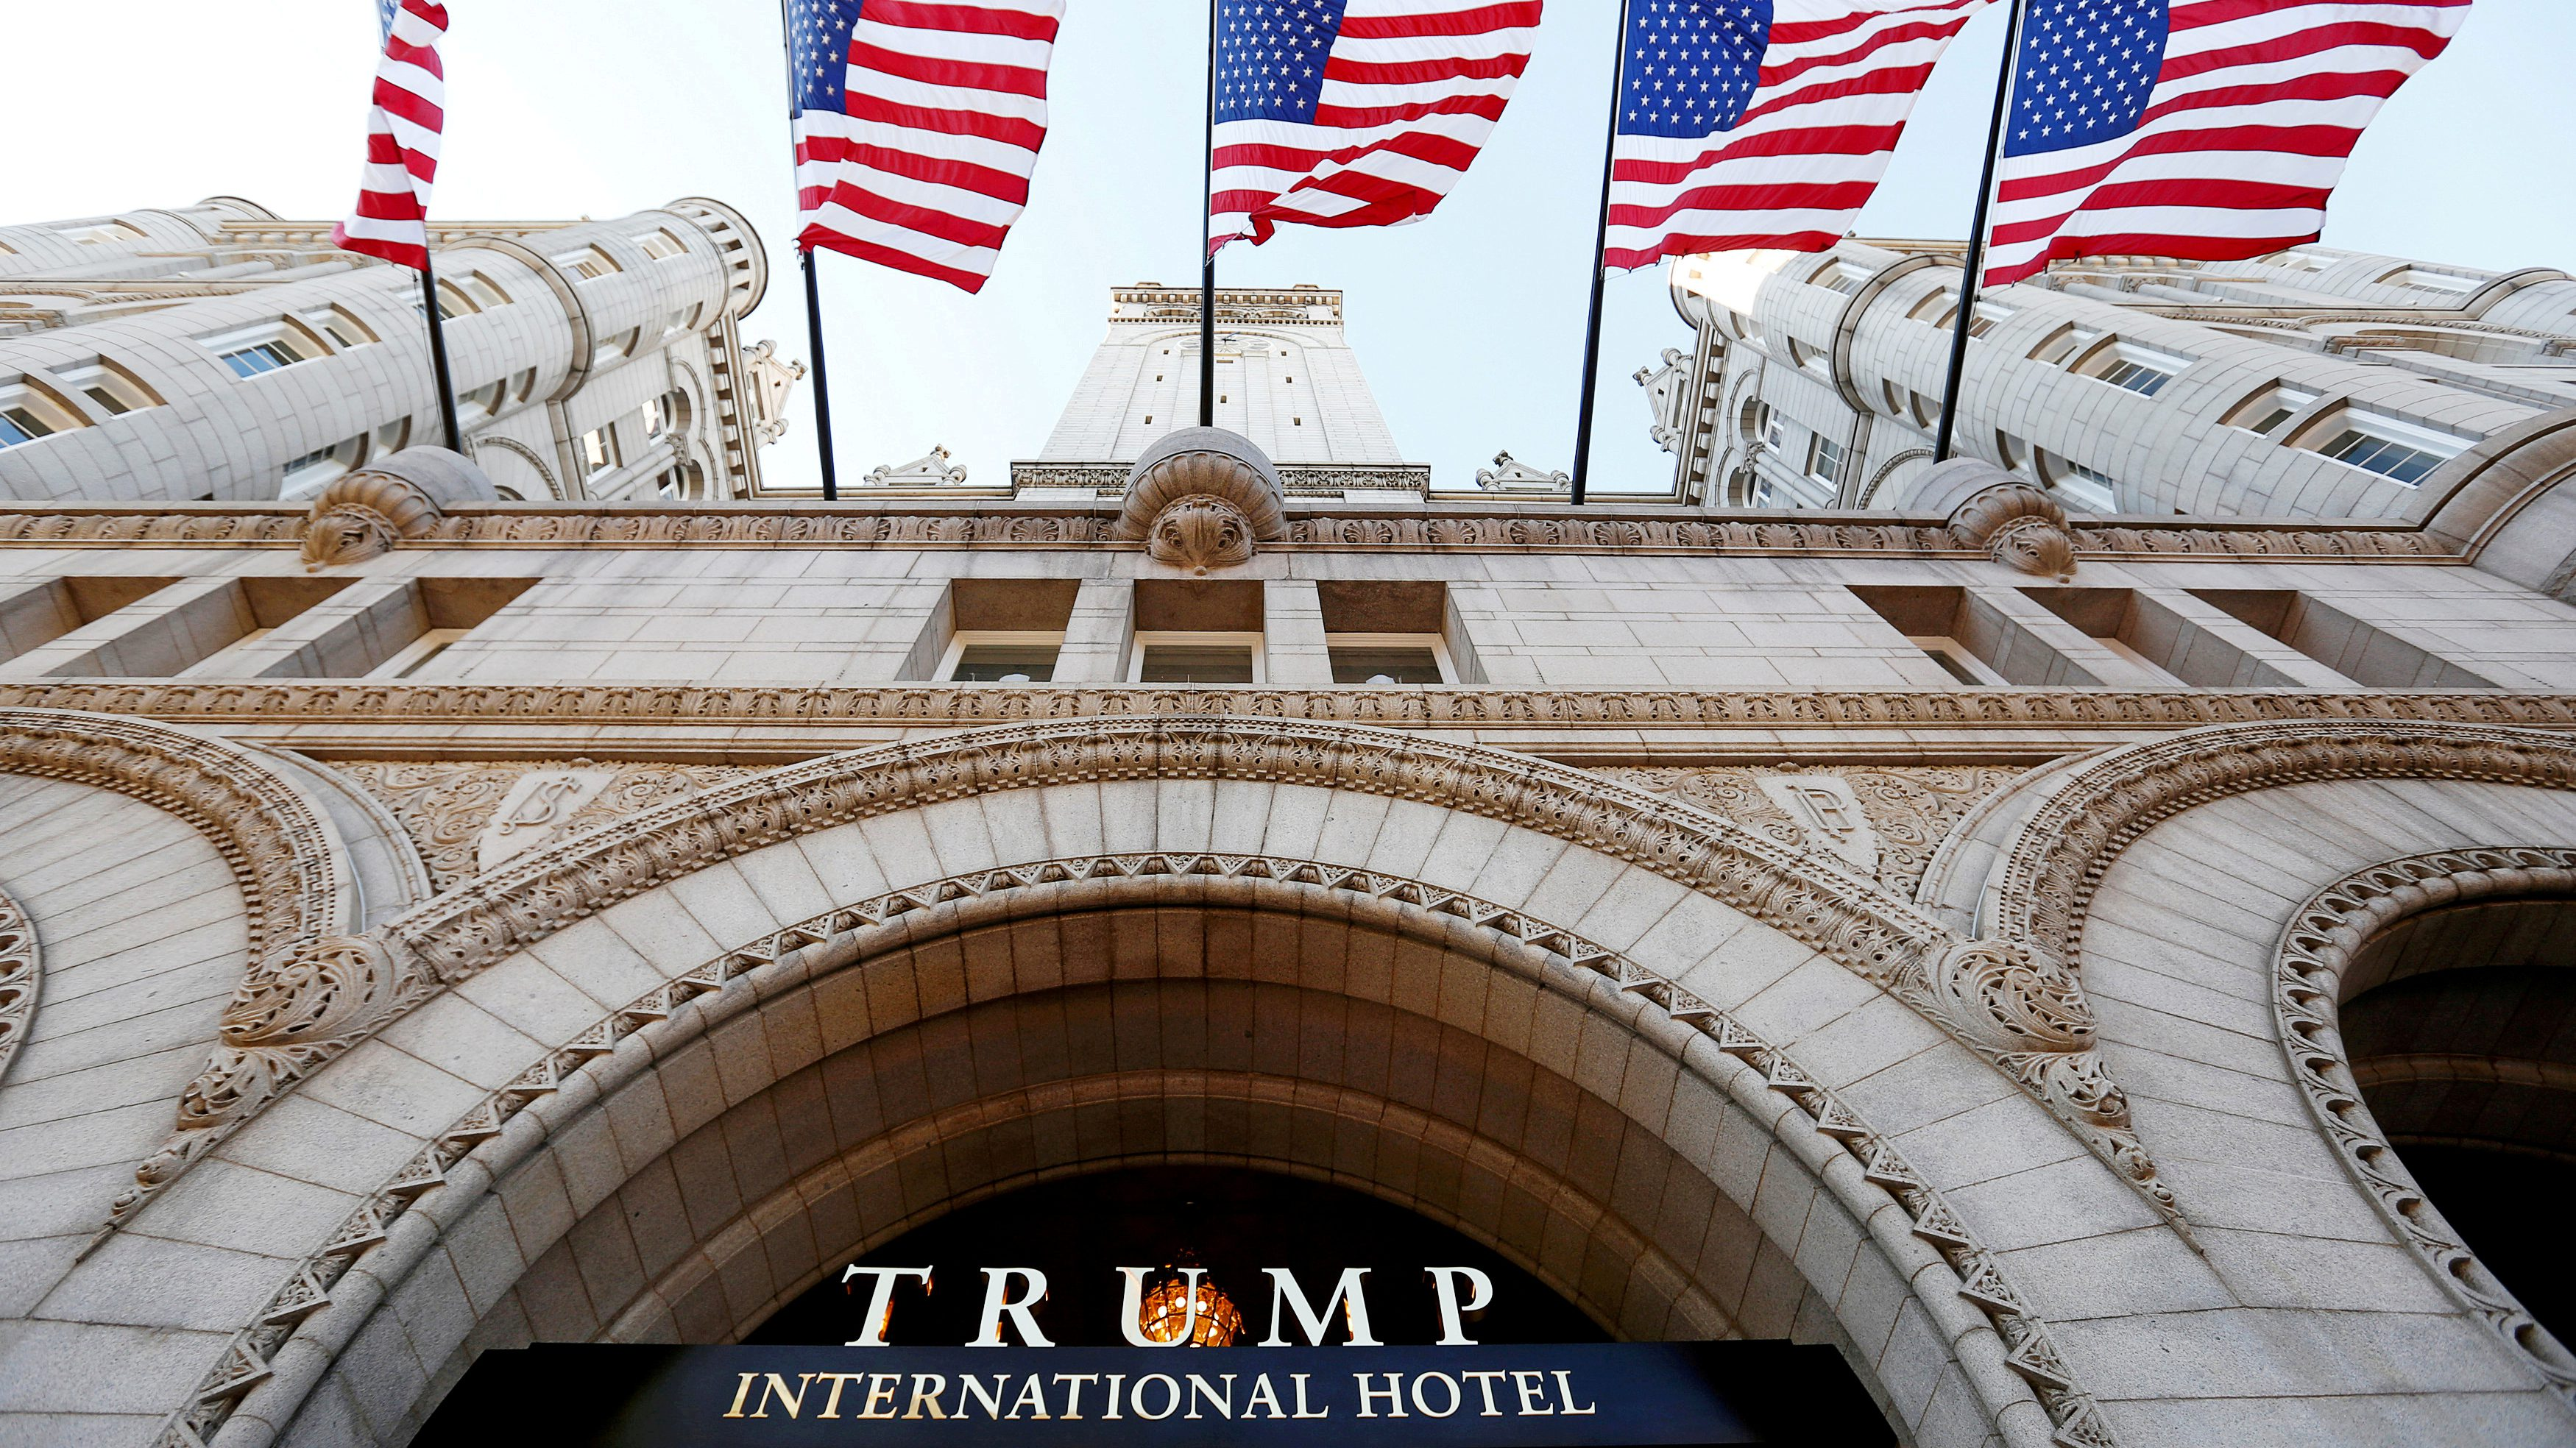 FILE PHOTO - Flags fly above the entrance to the new Trump International Hotel on its opening day in Washington, DC, U.S. on September 12, 2016. REUTERS/Kevin Lamarque/File Photo - RTX38E6D